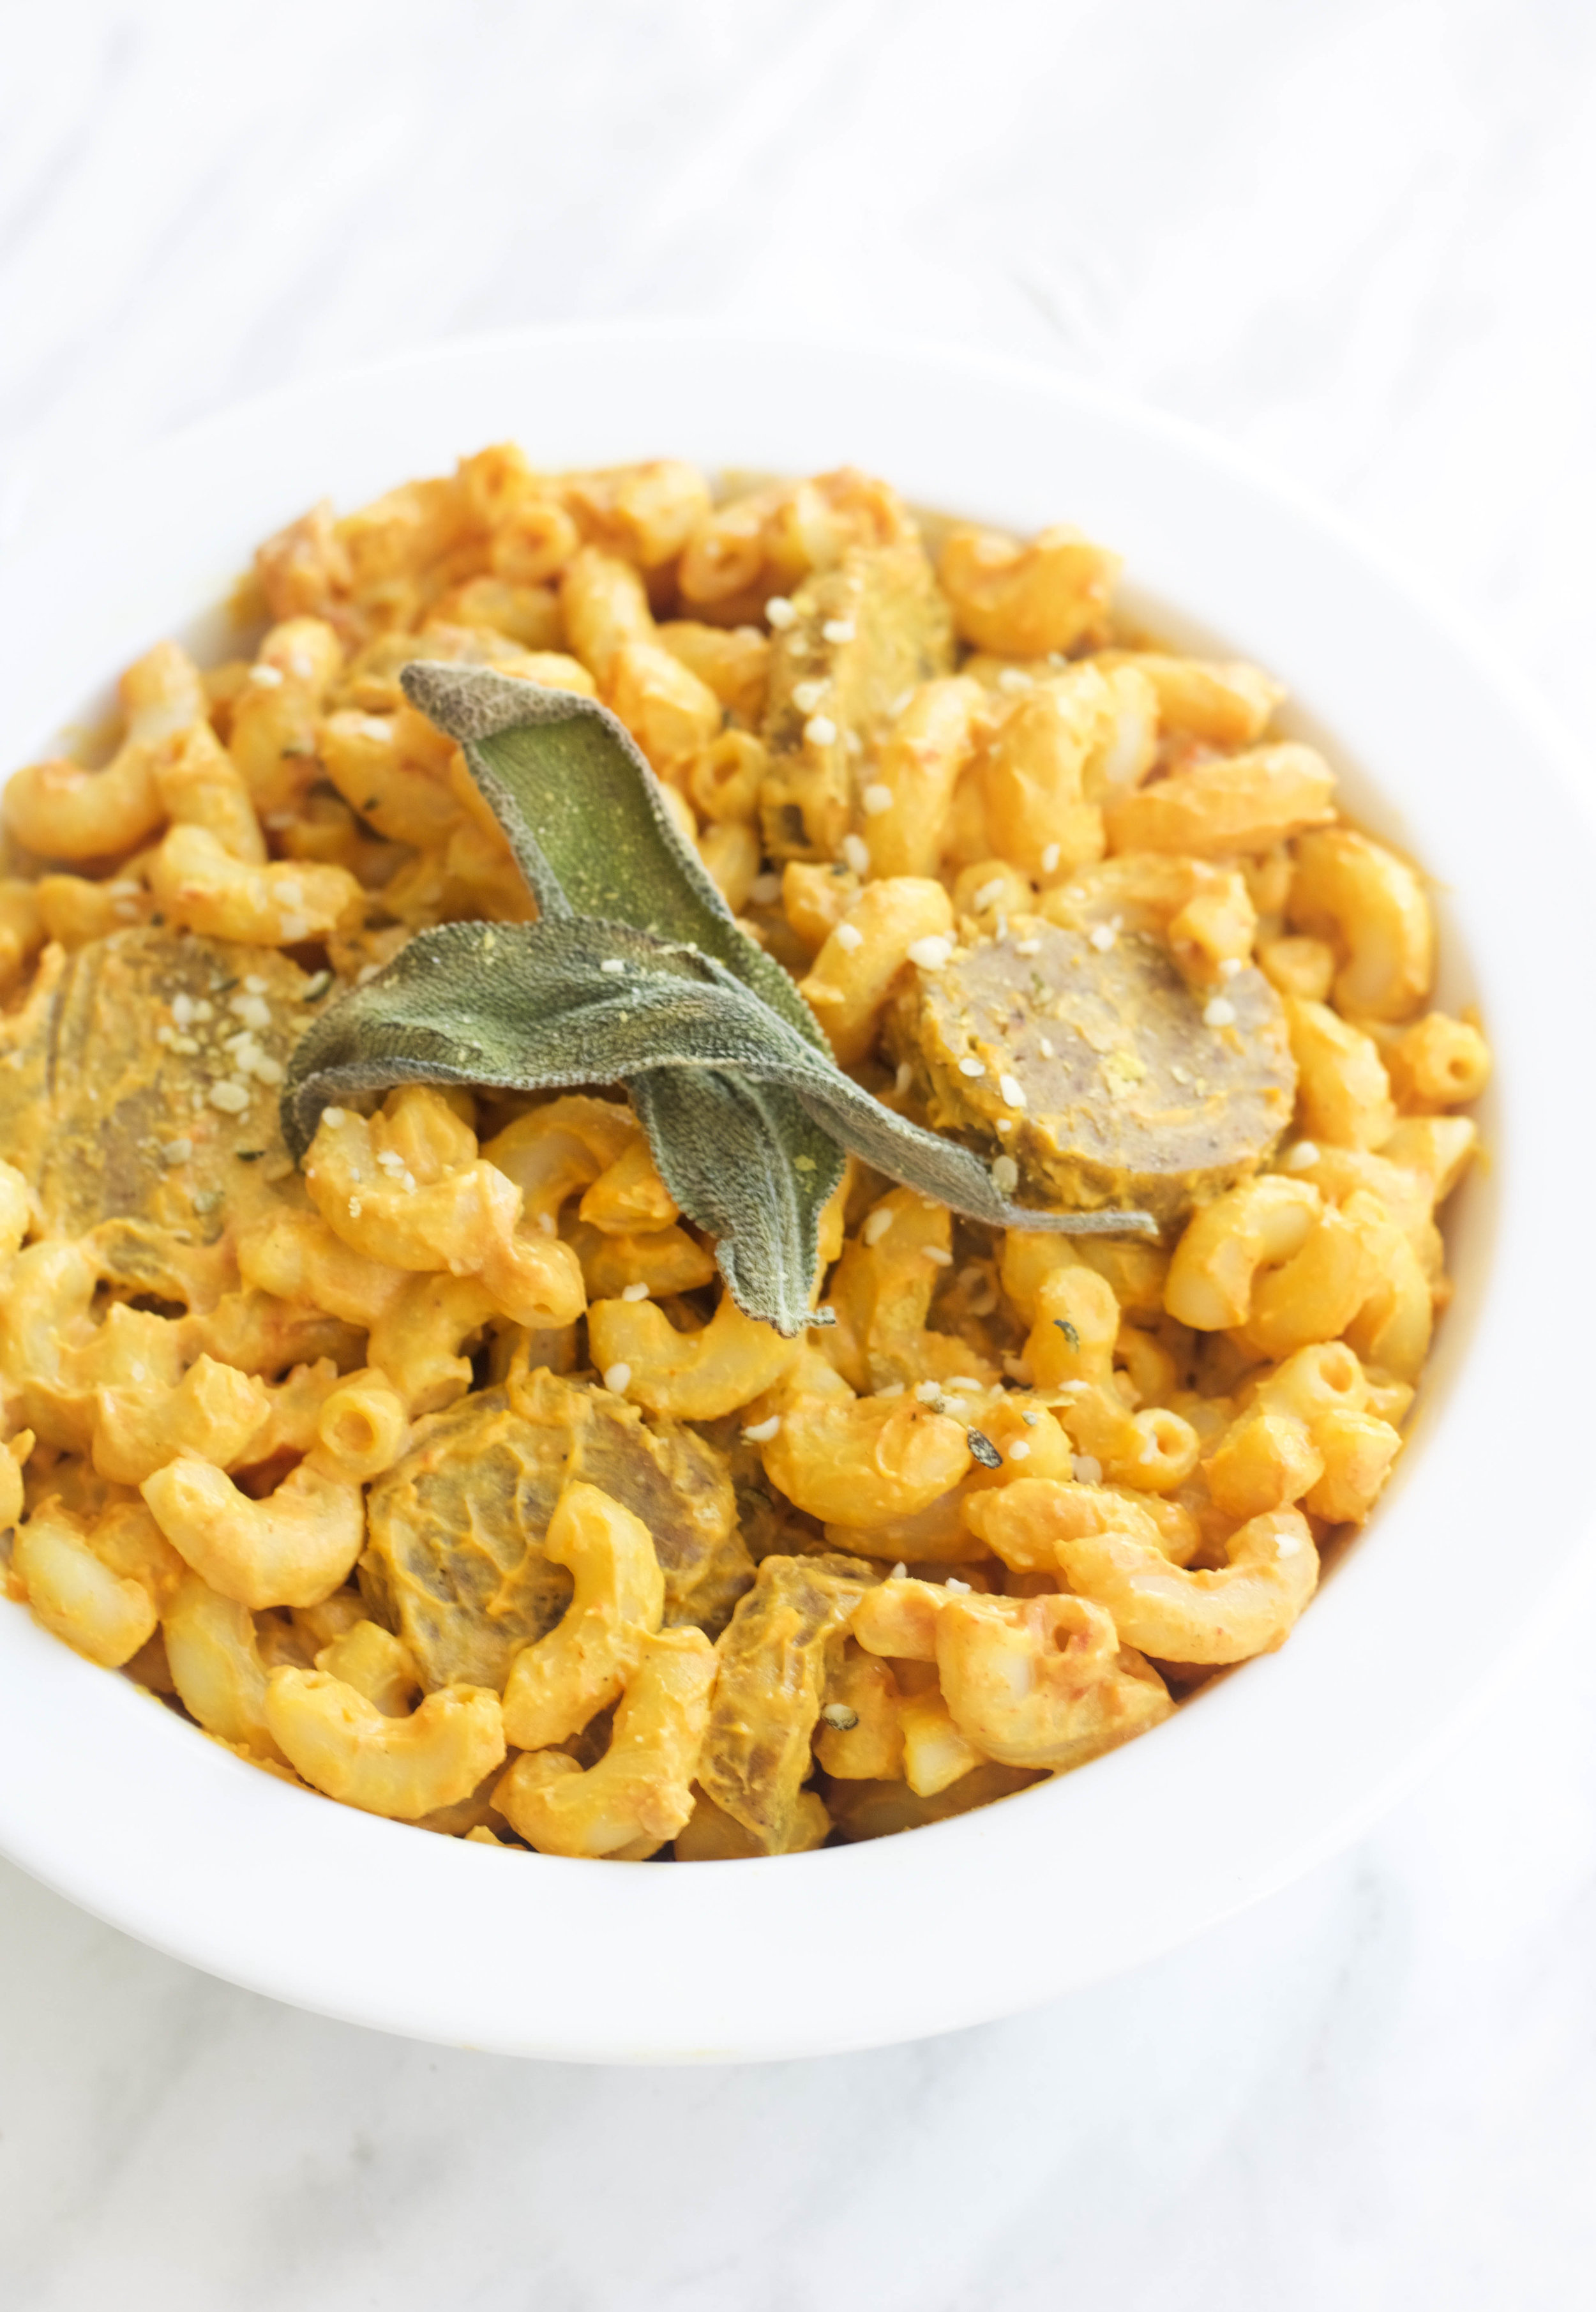 INGREDIENTS:    Creamy Cheese Sauce:   1/2 cup cashews (soaked)  2.5 tbsp tomato paste  1 tsp miso  1/4 C nutritional yeast  1/2 lemon juiced  2/3 C almond milk  1/2 C mashed sweet potato  1/2 tsp each of: onion powder, garlic powder, tumeric, paprika, and salt   1.5 cup macaroni (dry) - I love Gogoquinoa pastas!!    Maple Seitan Sausage:   2 tbsp mashed white beans  1 tsp maple syrup  1 tbsp soy sauce  1/4 c veg broth  1 tsp liquid smoke  1 tbsp tahini  1/4 c VWG (60g)  1 tbsp nooch  1/4 tsp ginger  1/2 tsp garlic powder  1/4 tsp all spice  1/8 tsp nut meg  1/8 tsp cloves  1 tsp smoked paprika  1 tbsp chickpea flour   BBQ Chicken   1/2 onion, chopped  2 servings of Soy curls (soaked in water)  1/2 c BBQ sauce   Taco   1/2 onion, chopped  1/2 tomato diced  2 servings taco crumbles, soaked